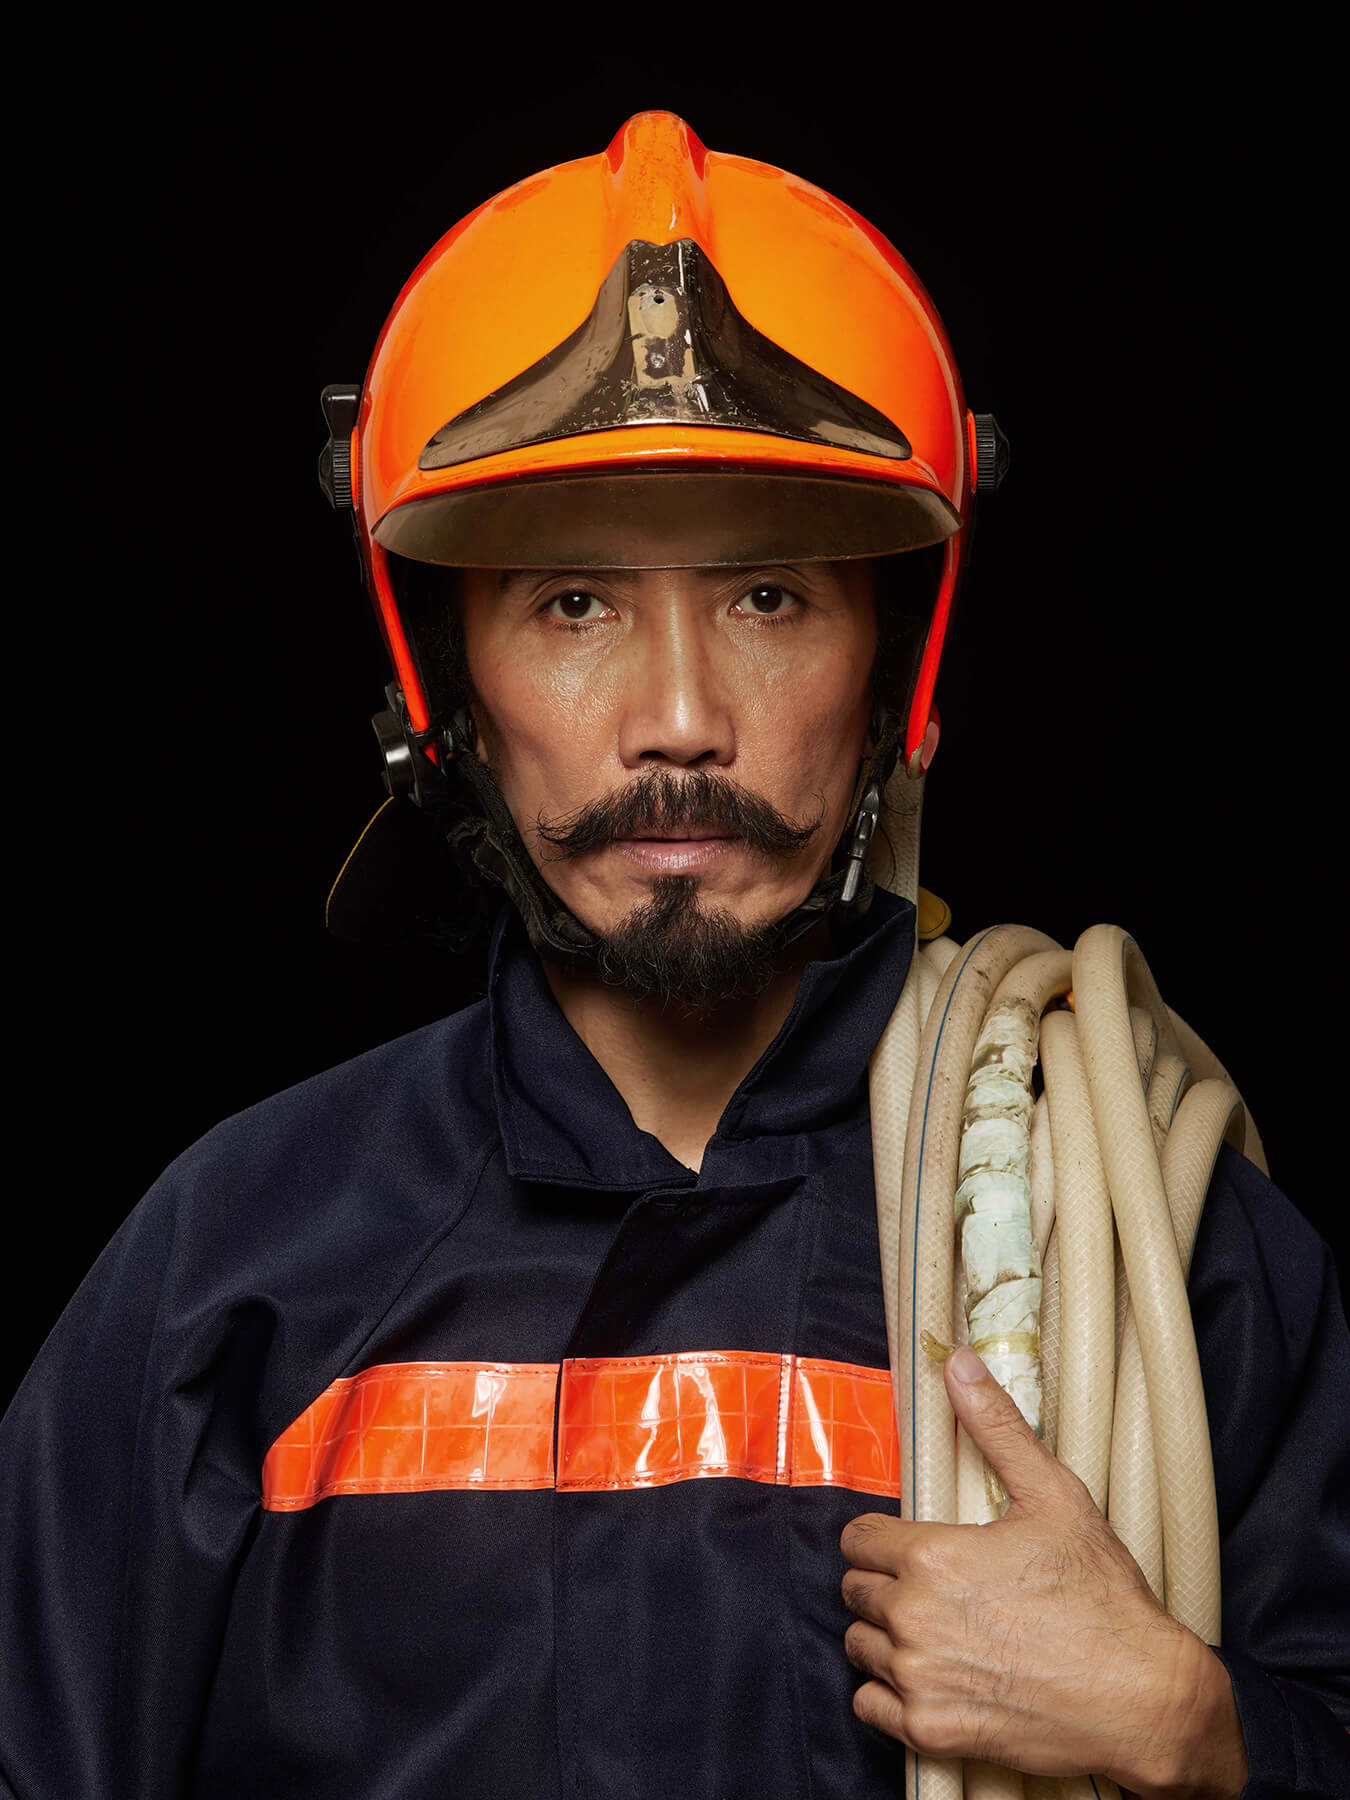 16 Oct 2017 A Salute to firefighters: Derong is photographed as a firefighter